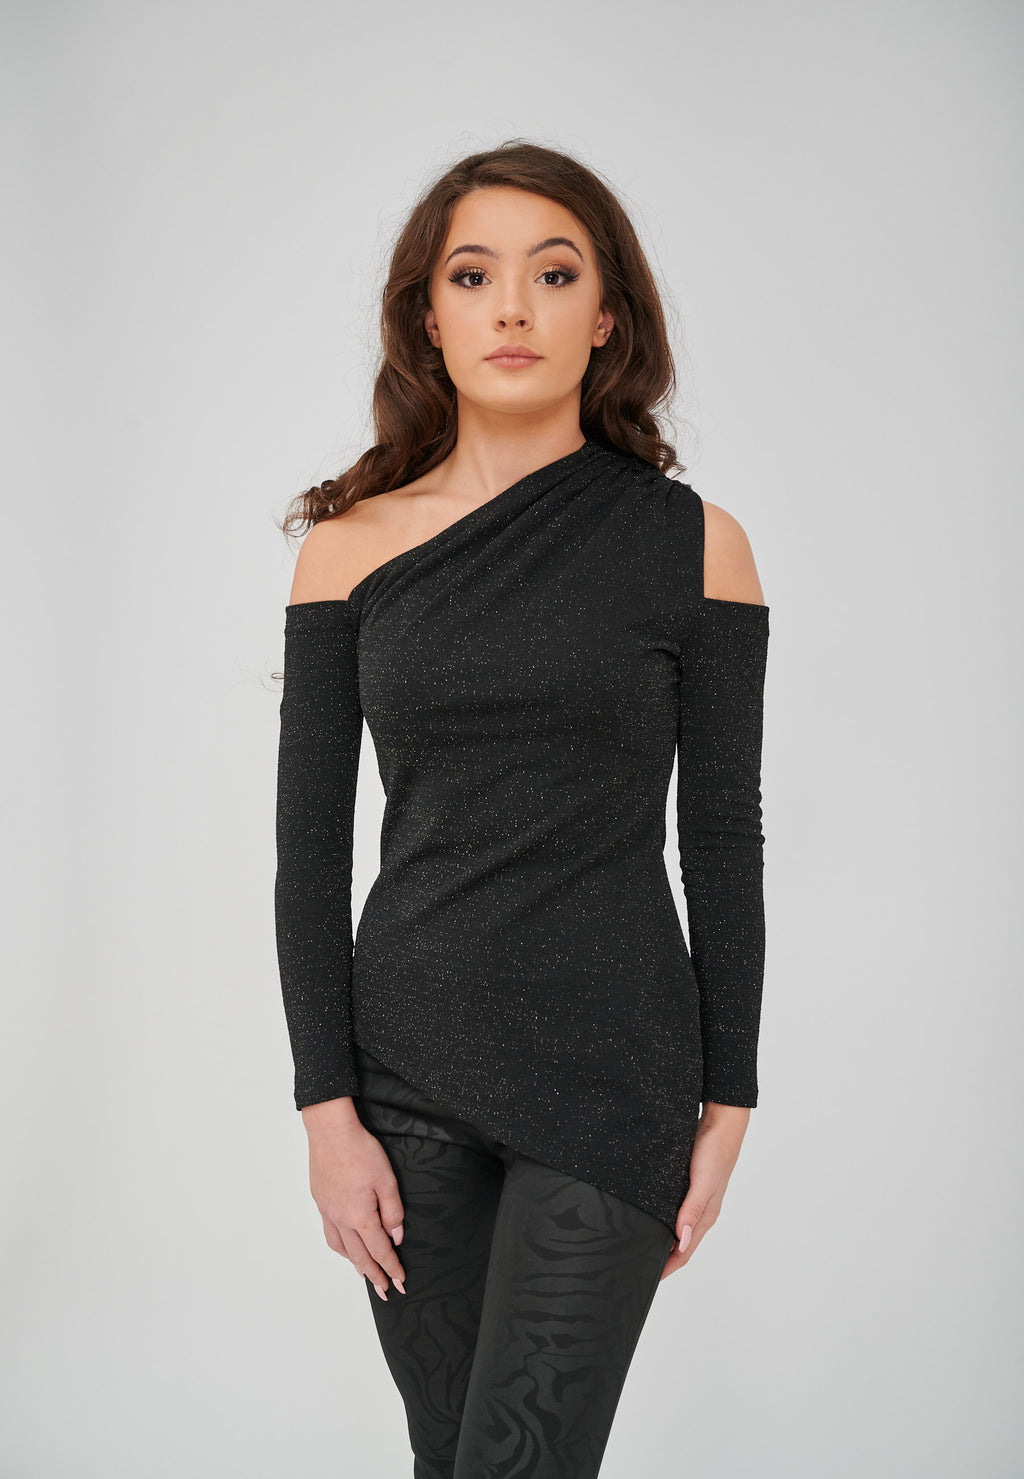 The Sofia Lurex Cold Shoulder Asymmetric Top